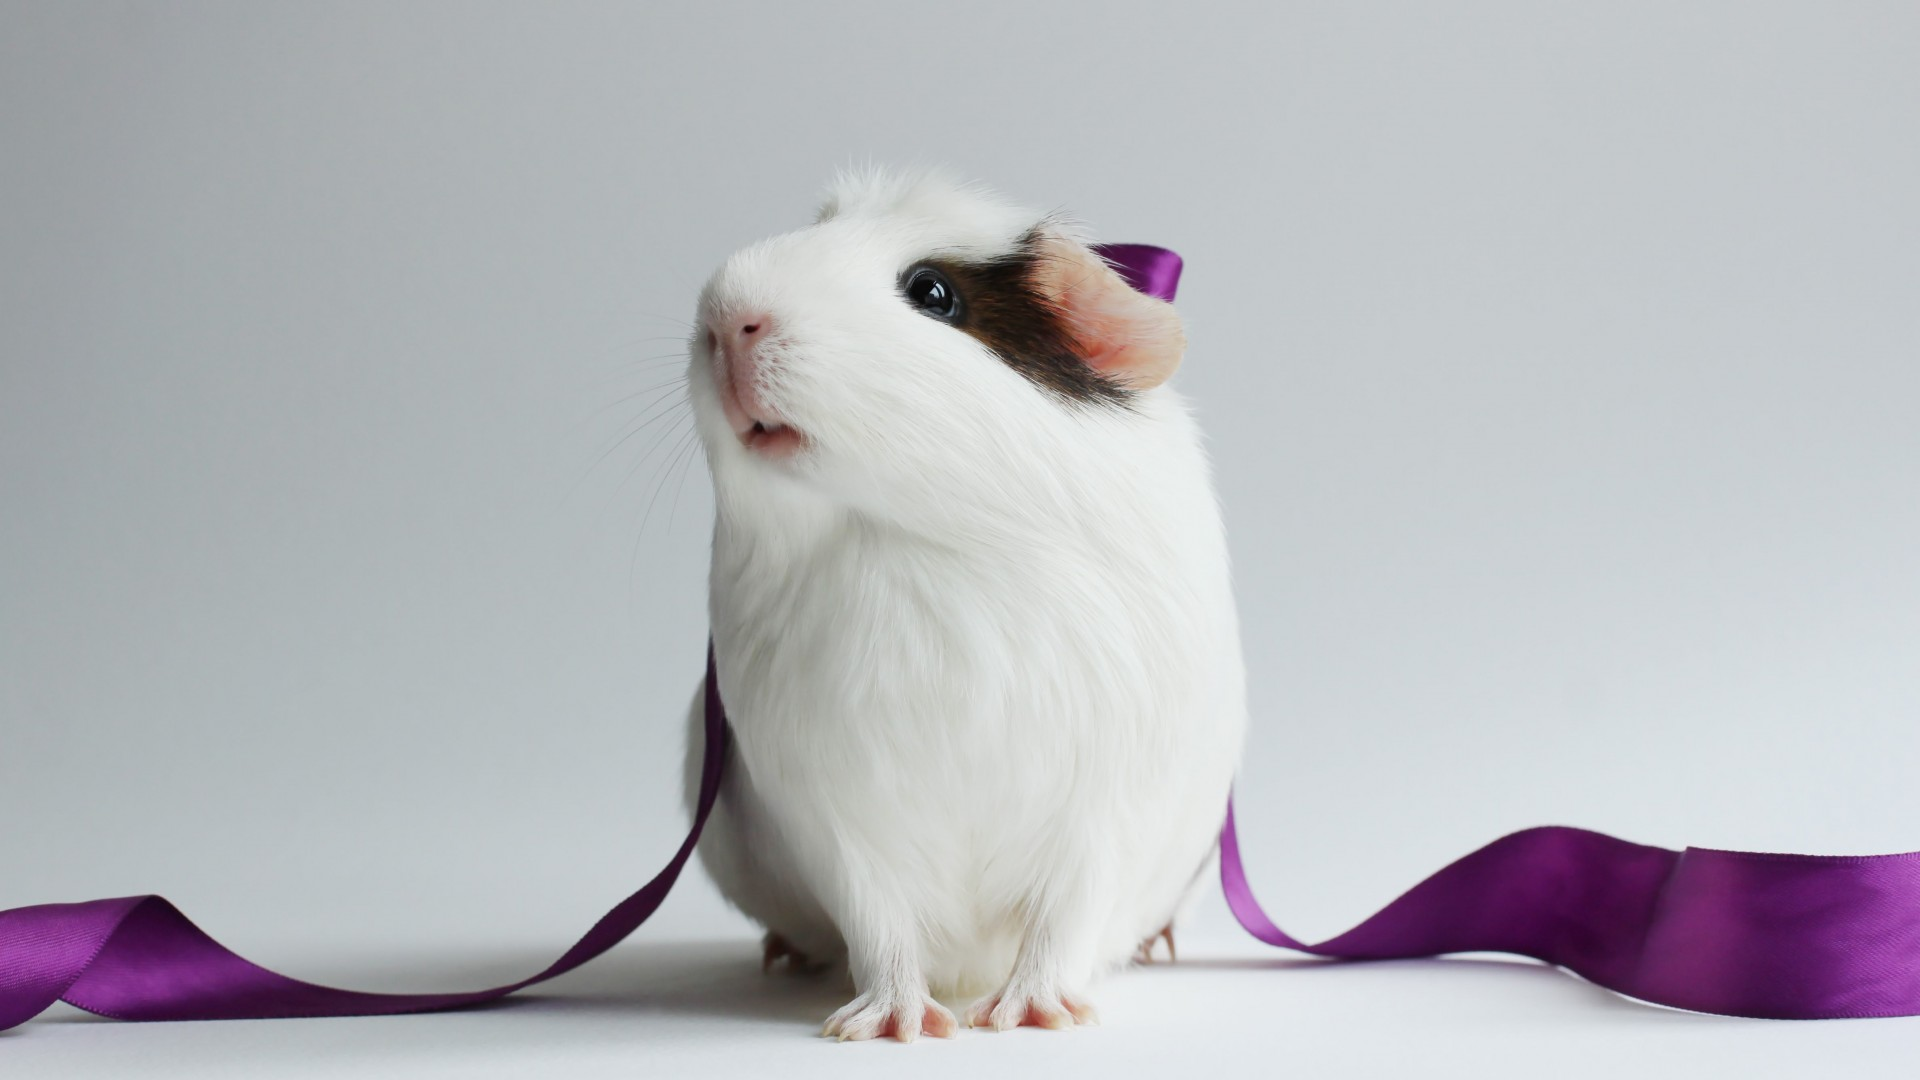 hamster, cute hamster, white, close-up, purple, ribbon, white background (horizontal)